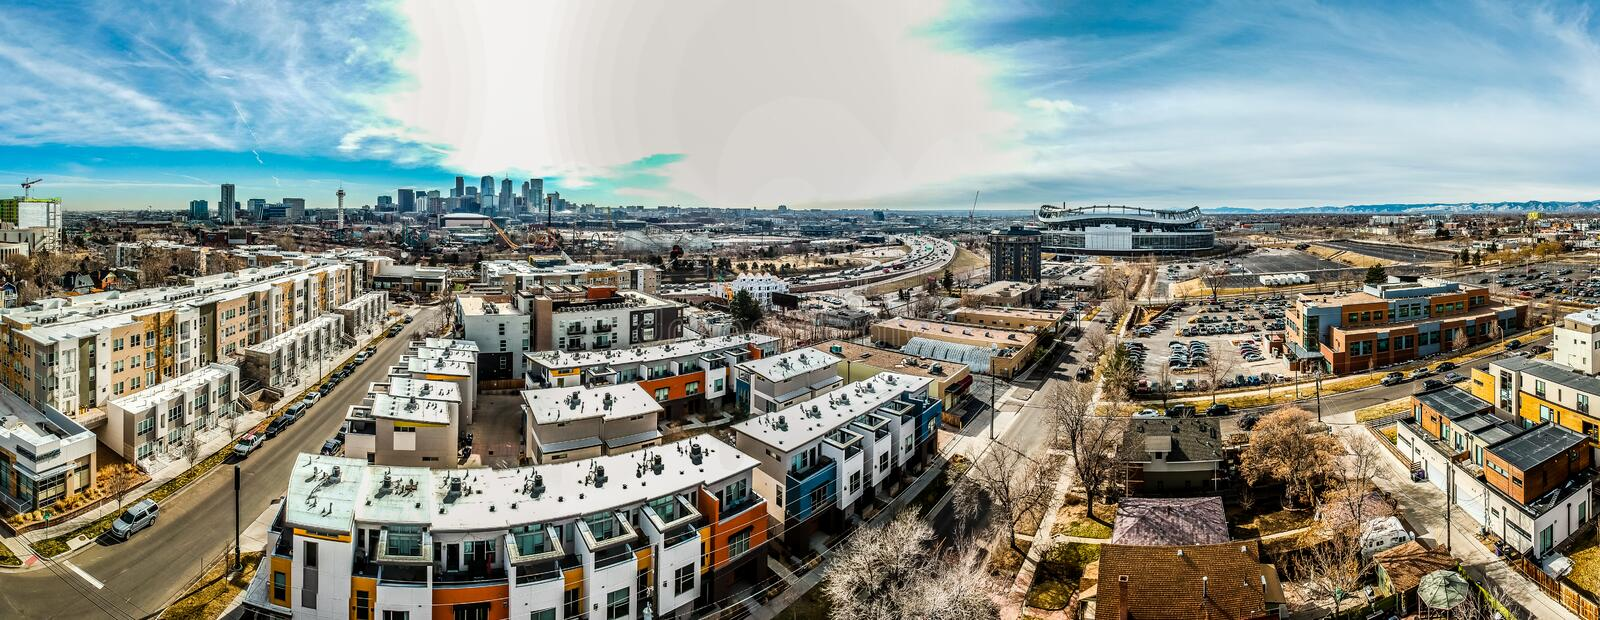 Neighborhood of Denver, Colorado royalty free stock photography